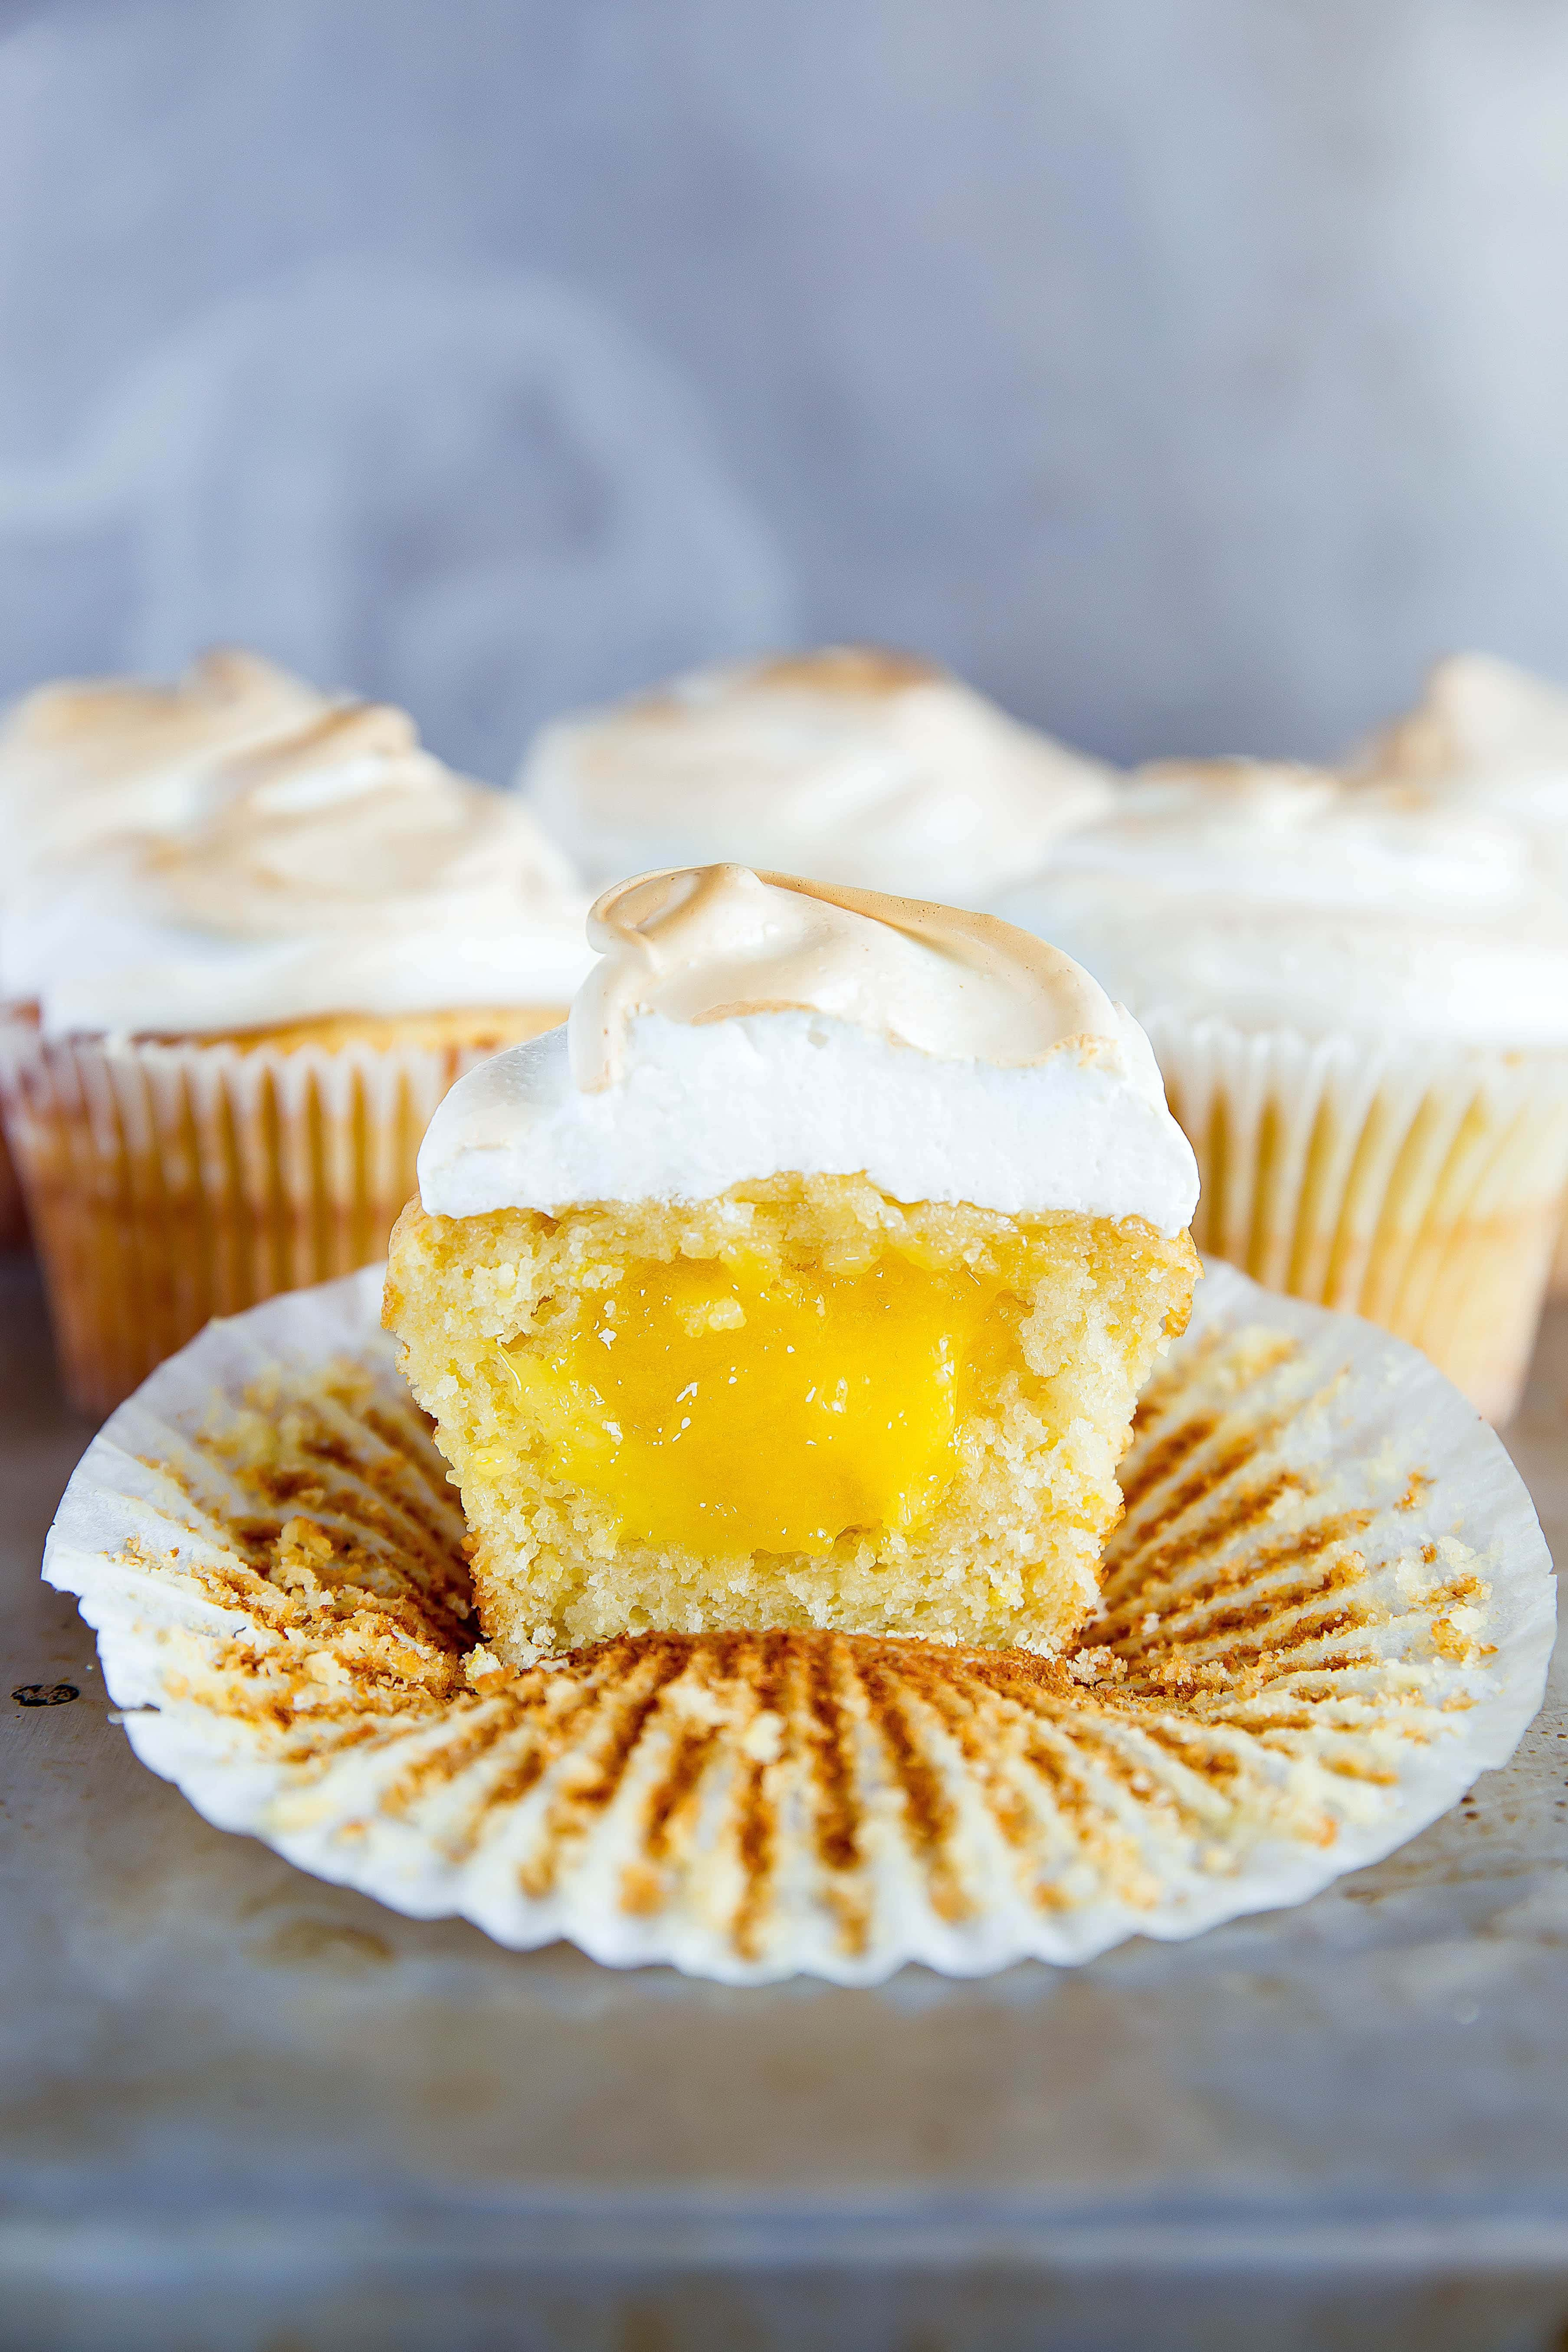 Lemon Meringue Cupcakes: fluffy lemon cupcakes filled with lemon curd and topped with a perfectly golden meringue frosting! Are you drooling yet?